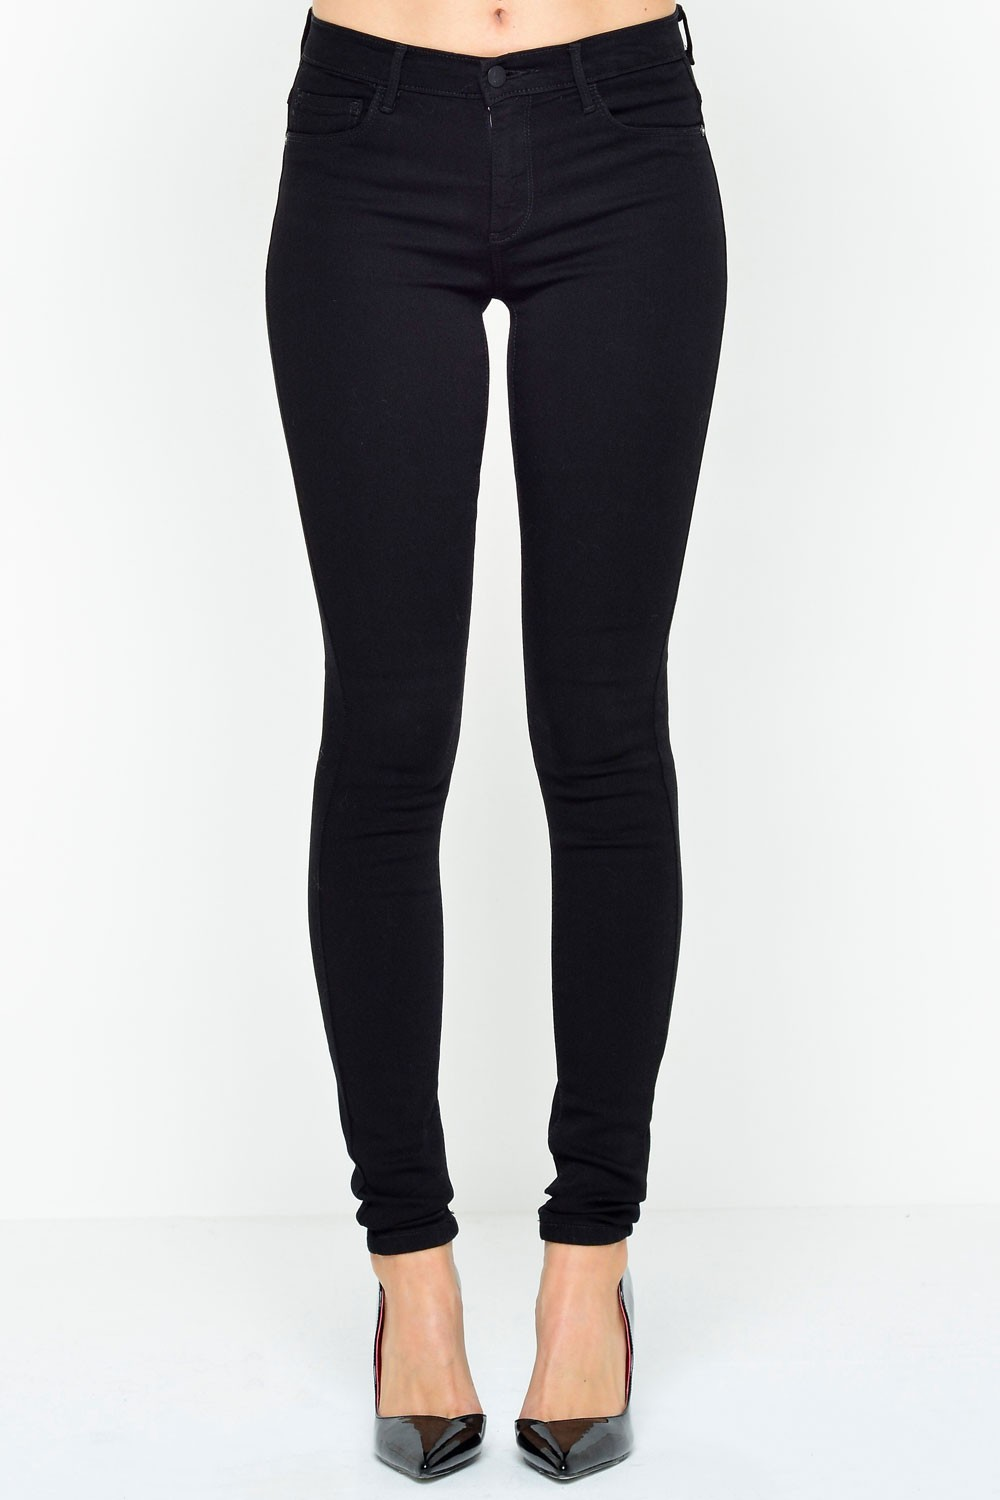 Only - Rain Short Skinny Jeans in Black | iCLOTHING